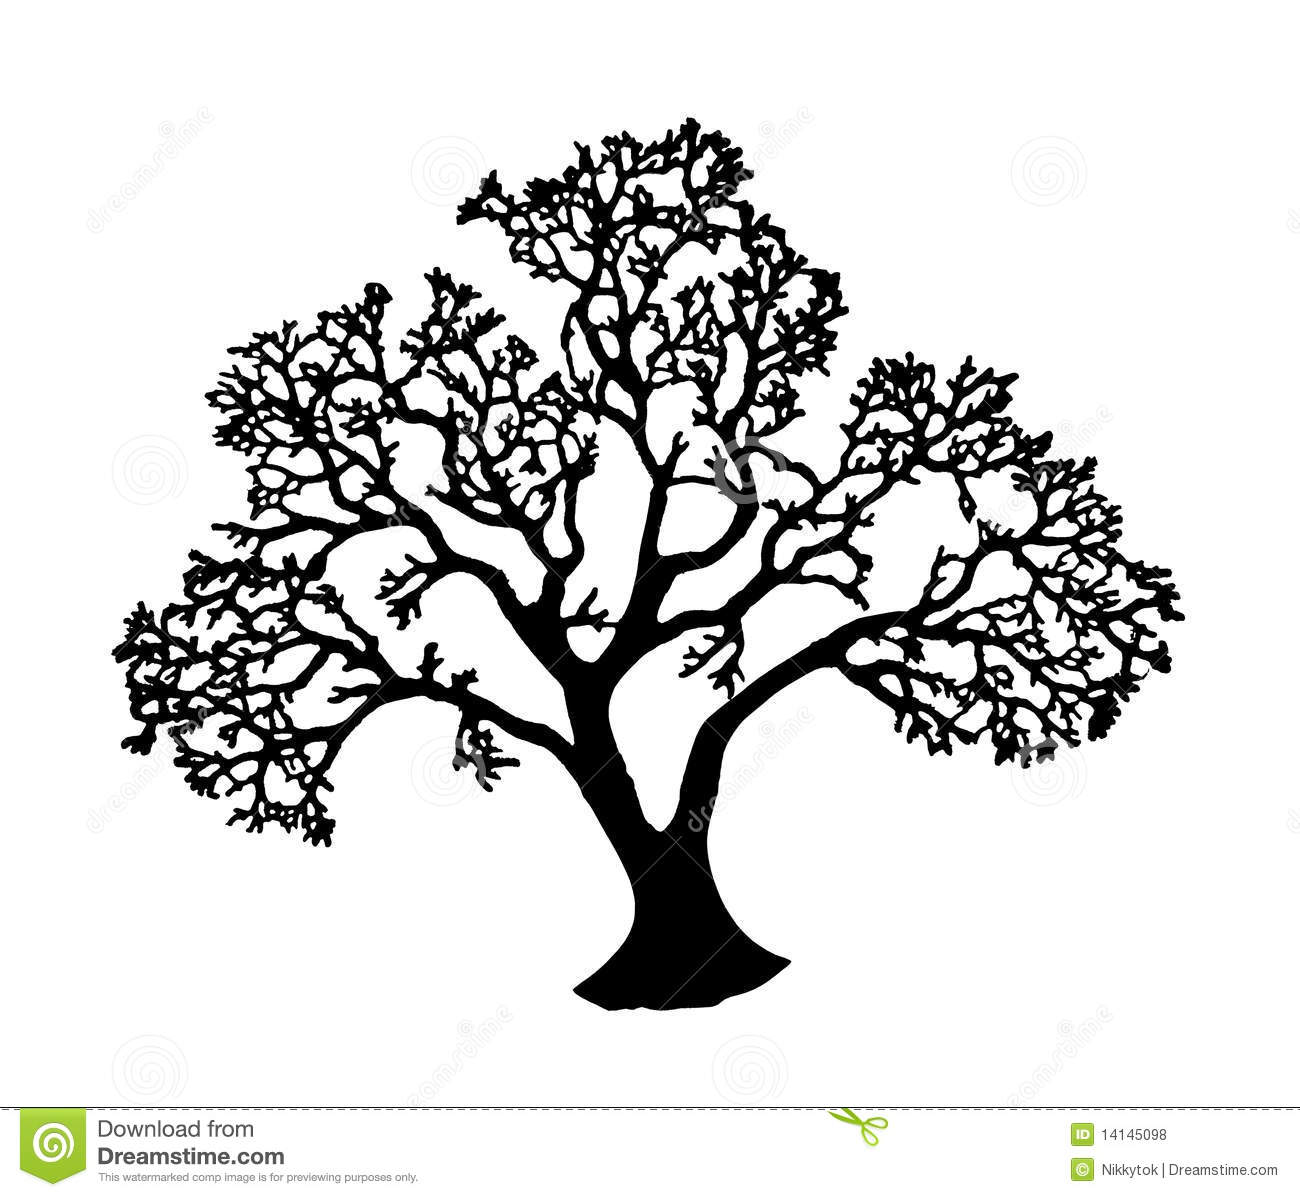 Tree Silhouette Royalty Free Stock Photos - Image: 14145098